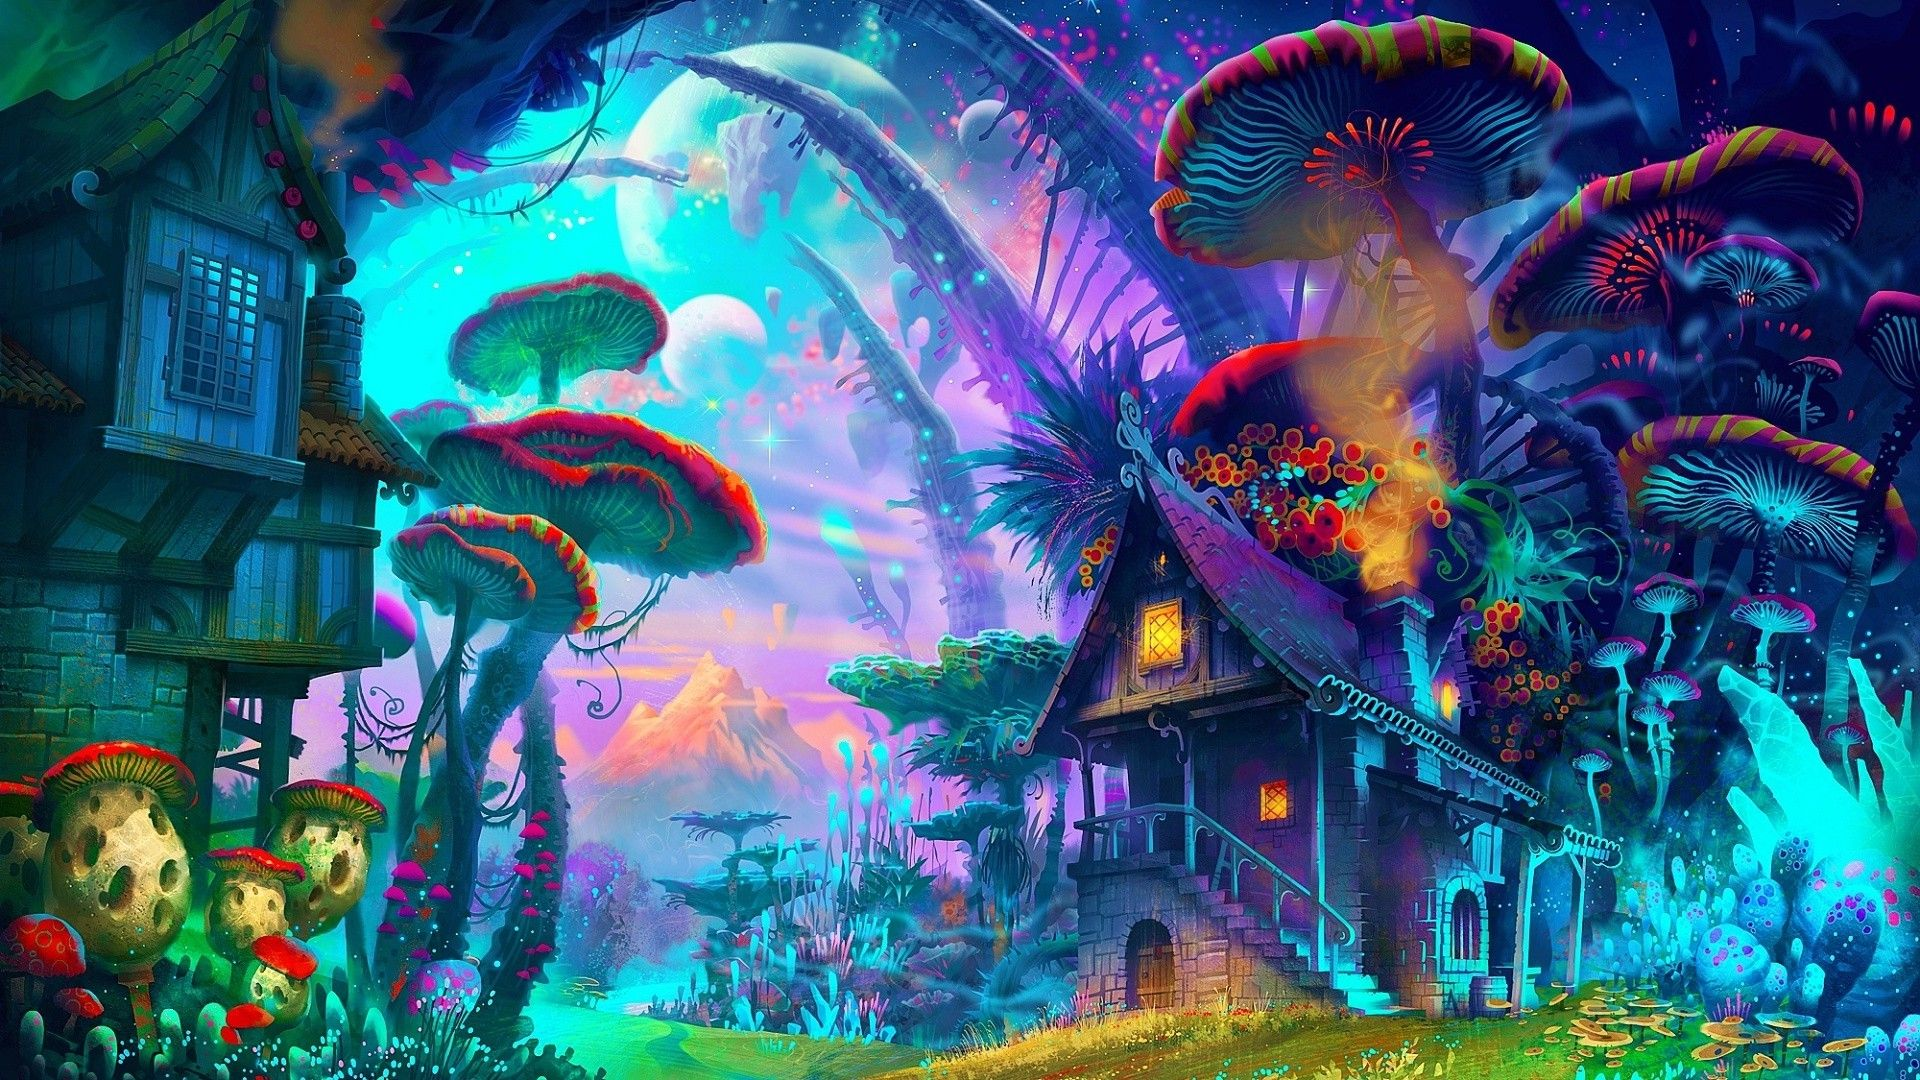 fantasy art drawing nature psychedelic colorful house mushroom